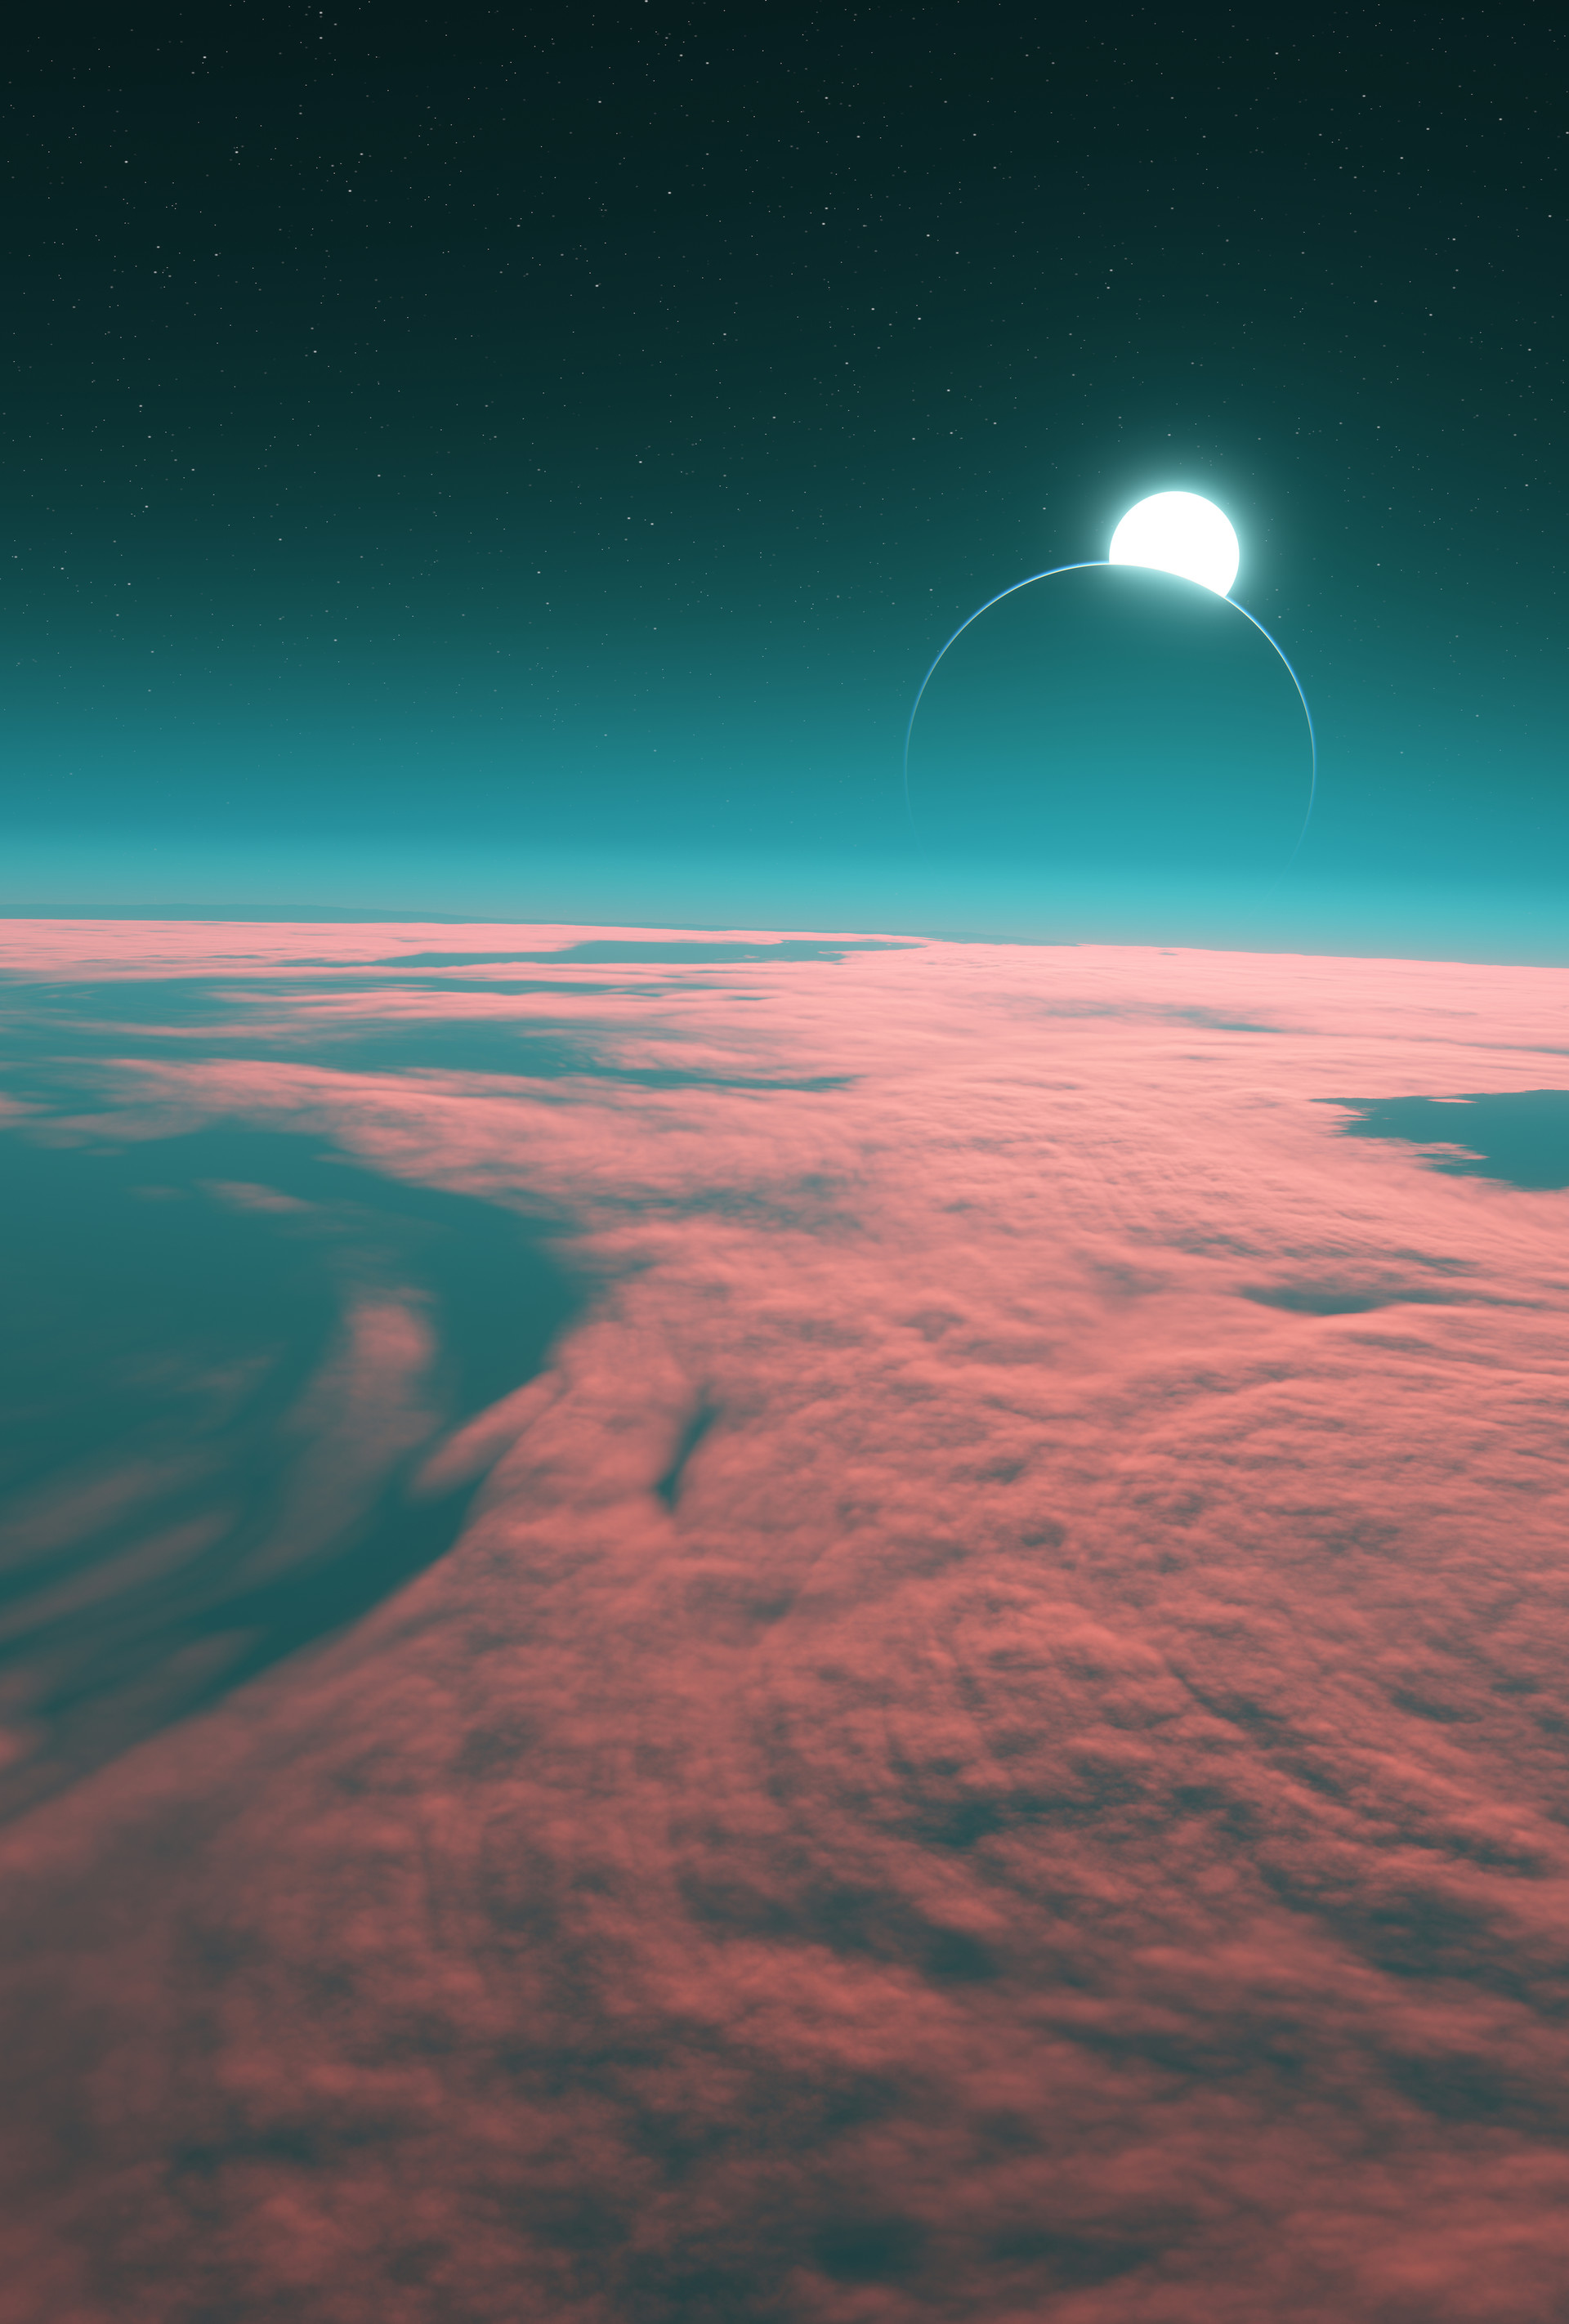 Skimming the reddened clouds of a potentially habitable super-earth with its moon visible.